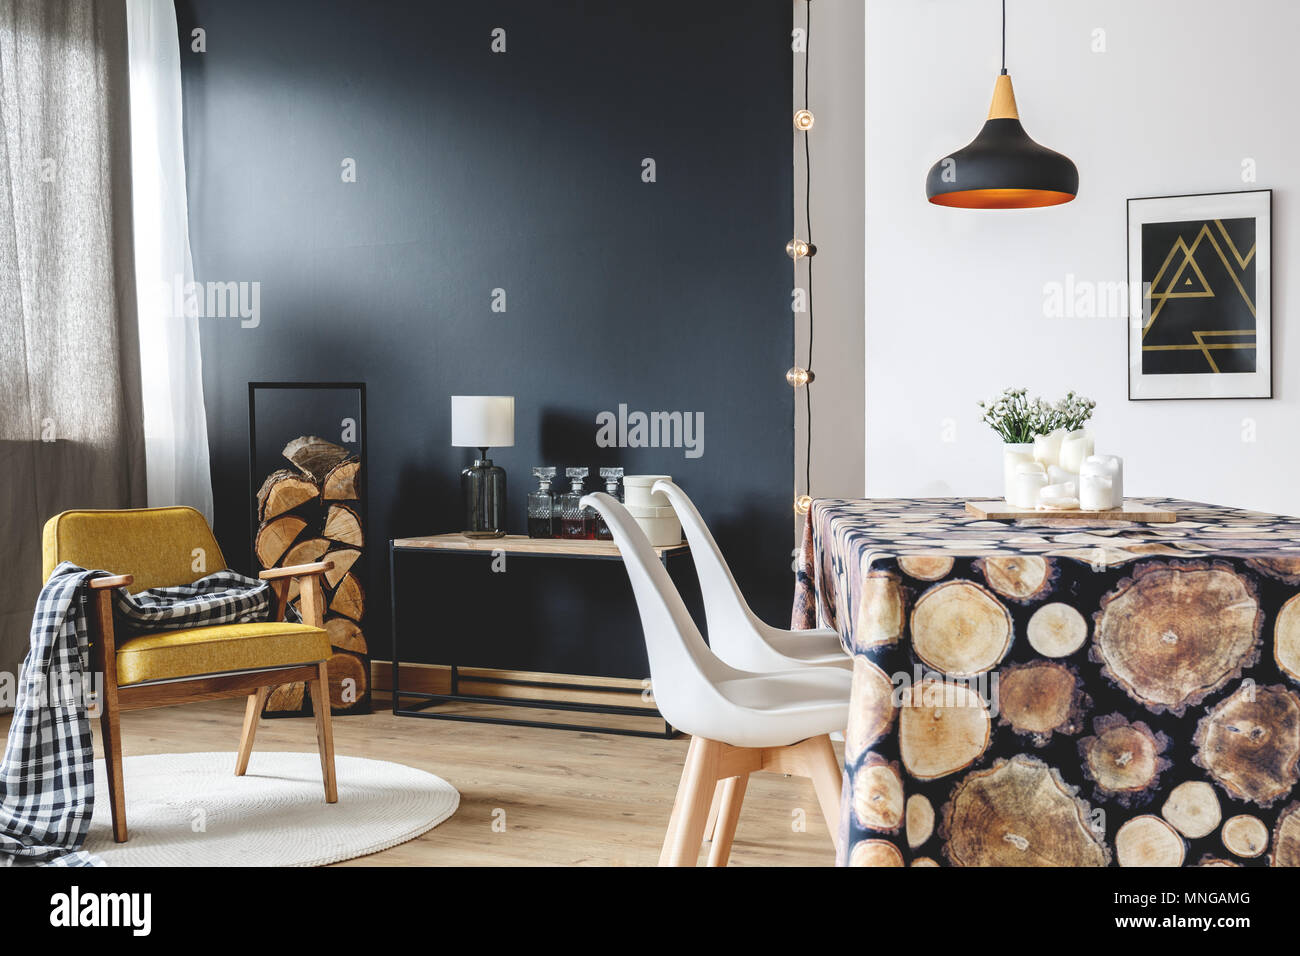 Wood design of modern interior with scandinavian furniture on black wall - Stock Image